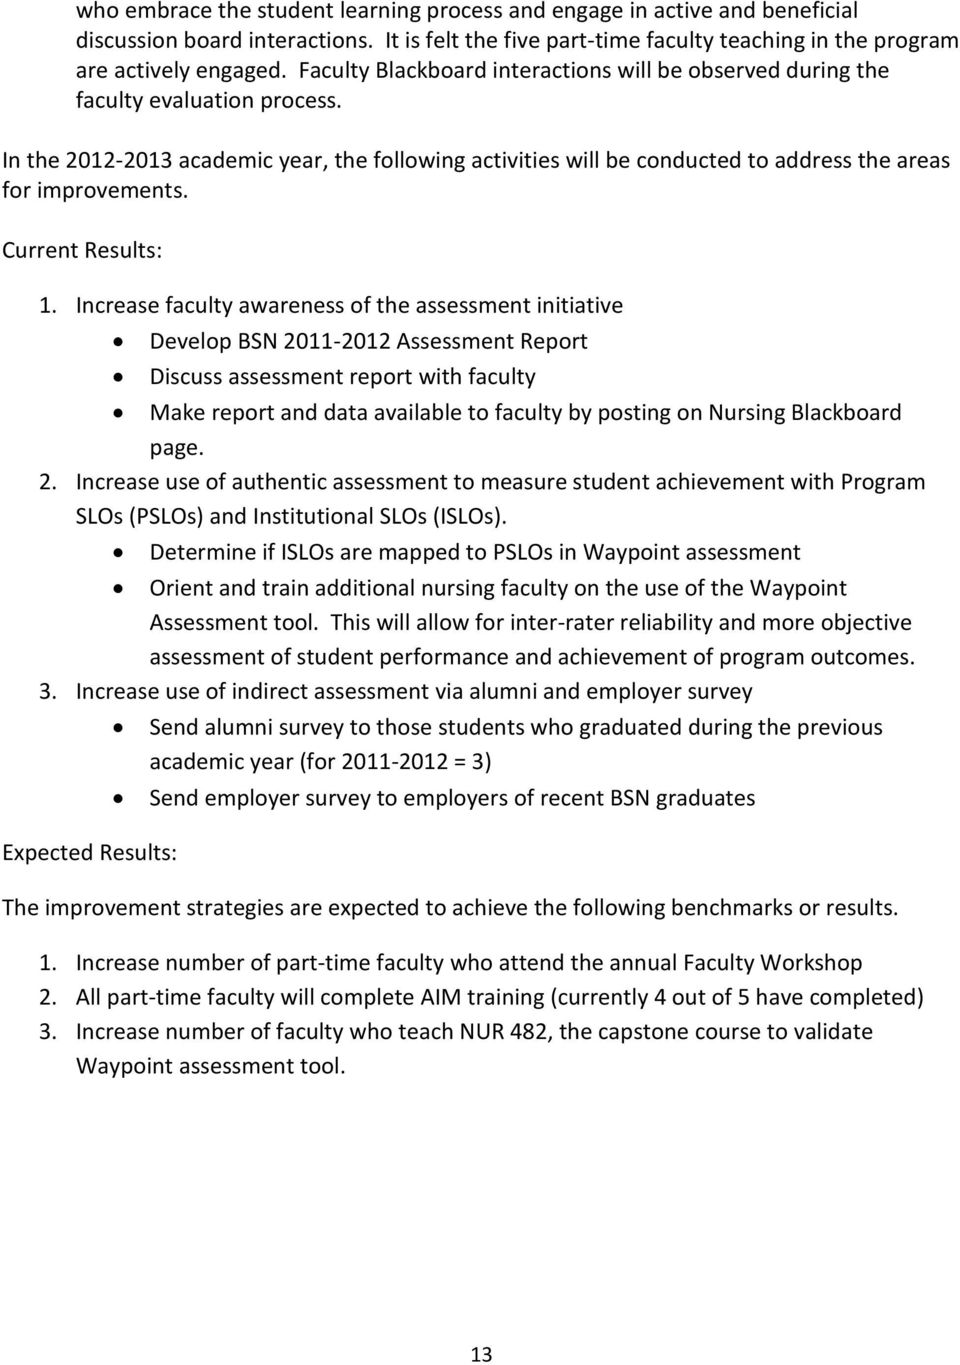 In the 2012-2013 academic year, the following activities will be conducted to address the areas for improvements. Current Results: 1.